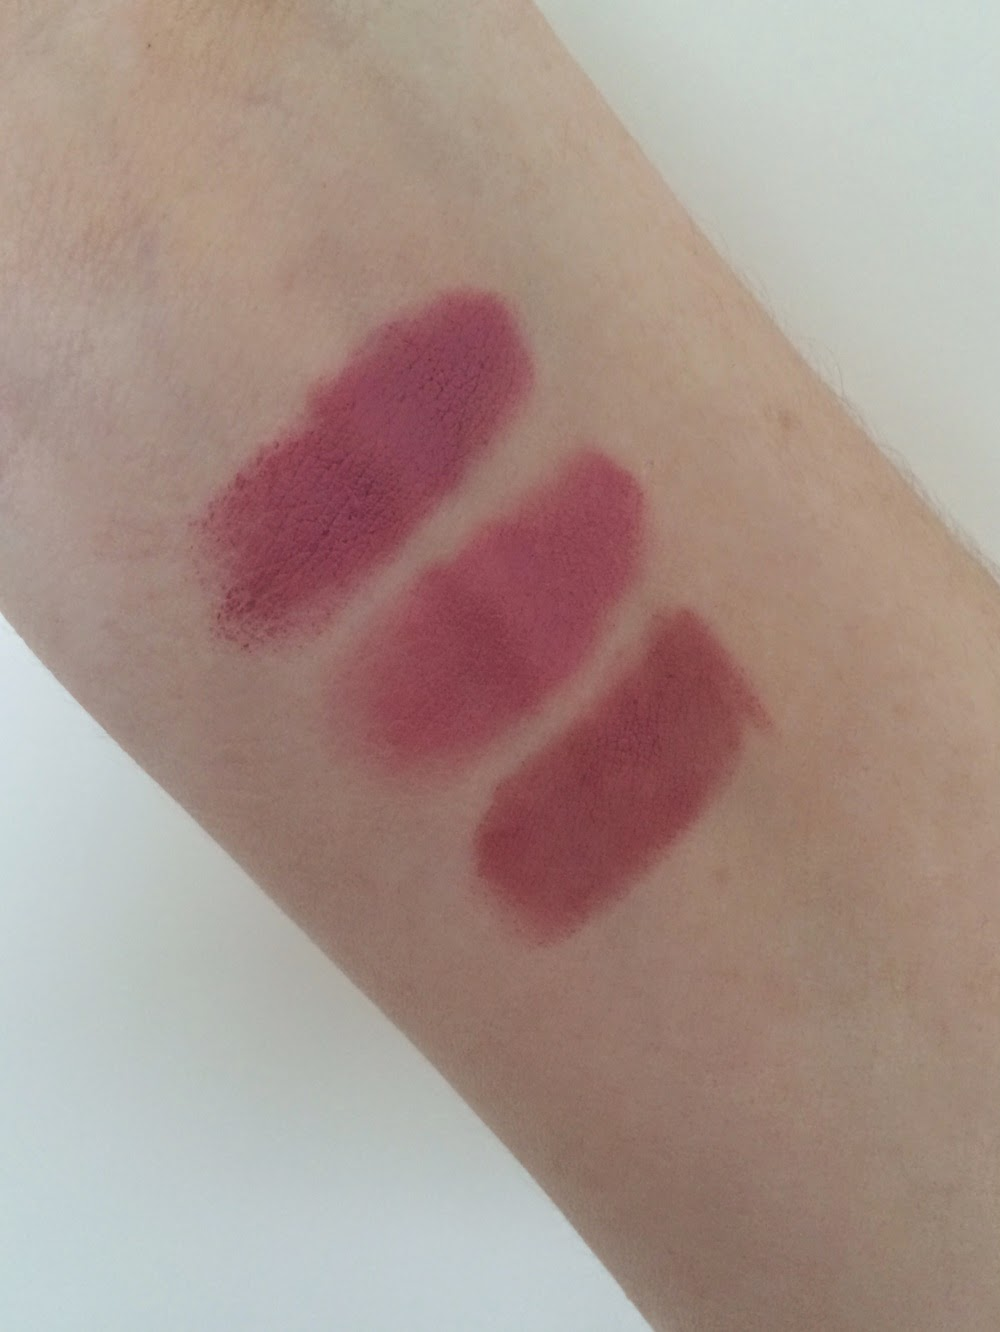 Rimmel Kate Moss 8 Is A Dupe For Mac